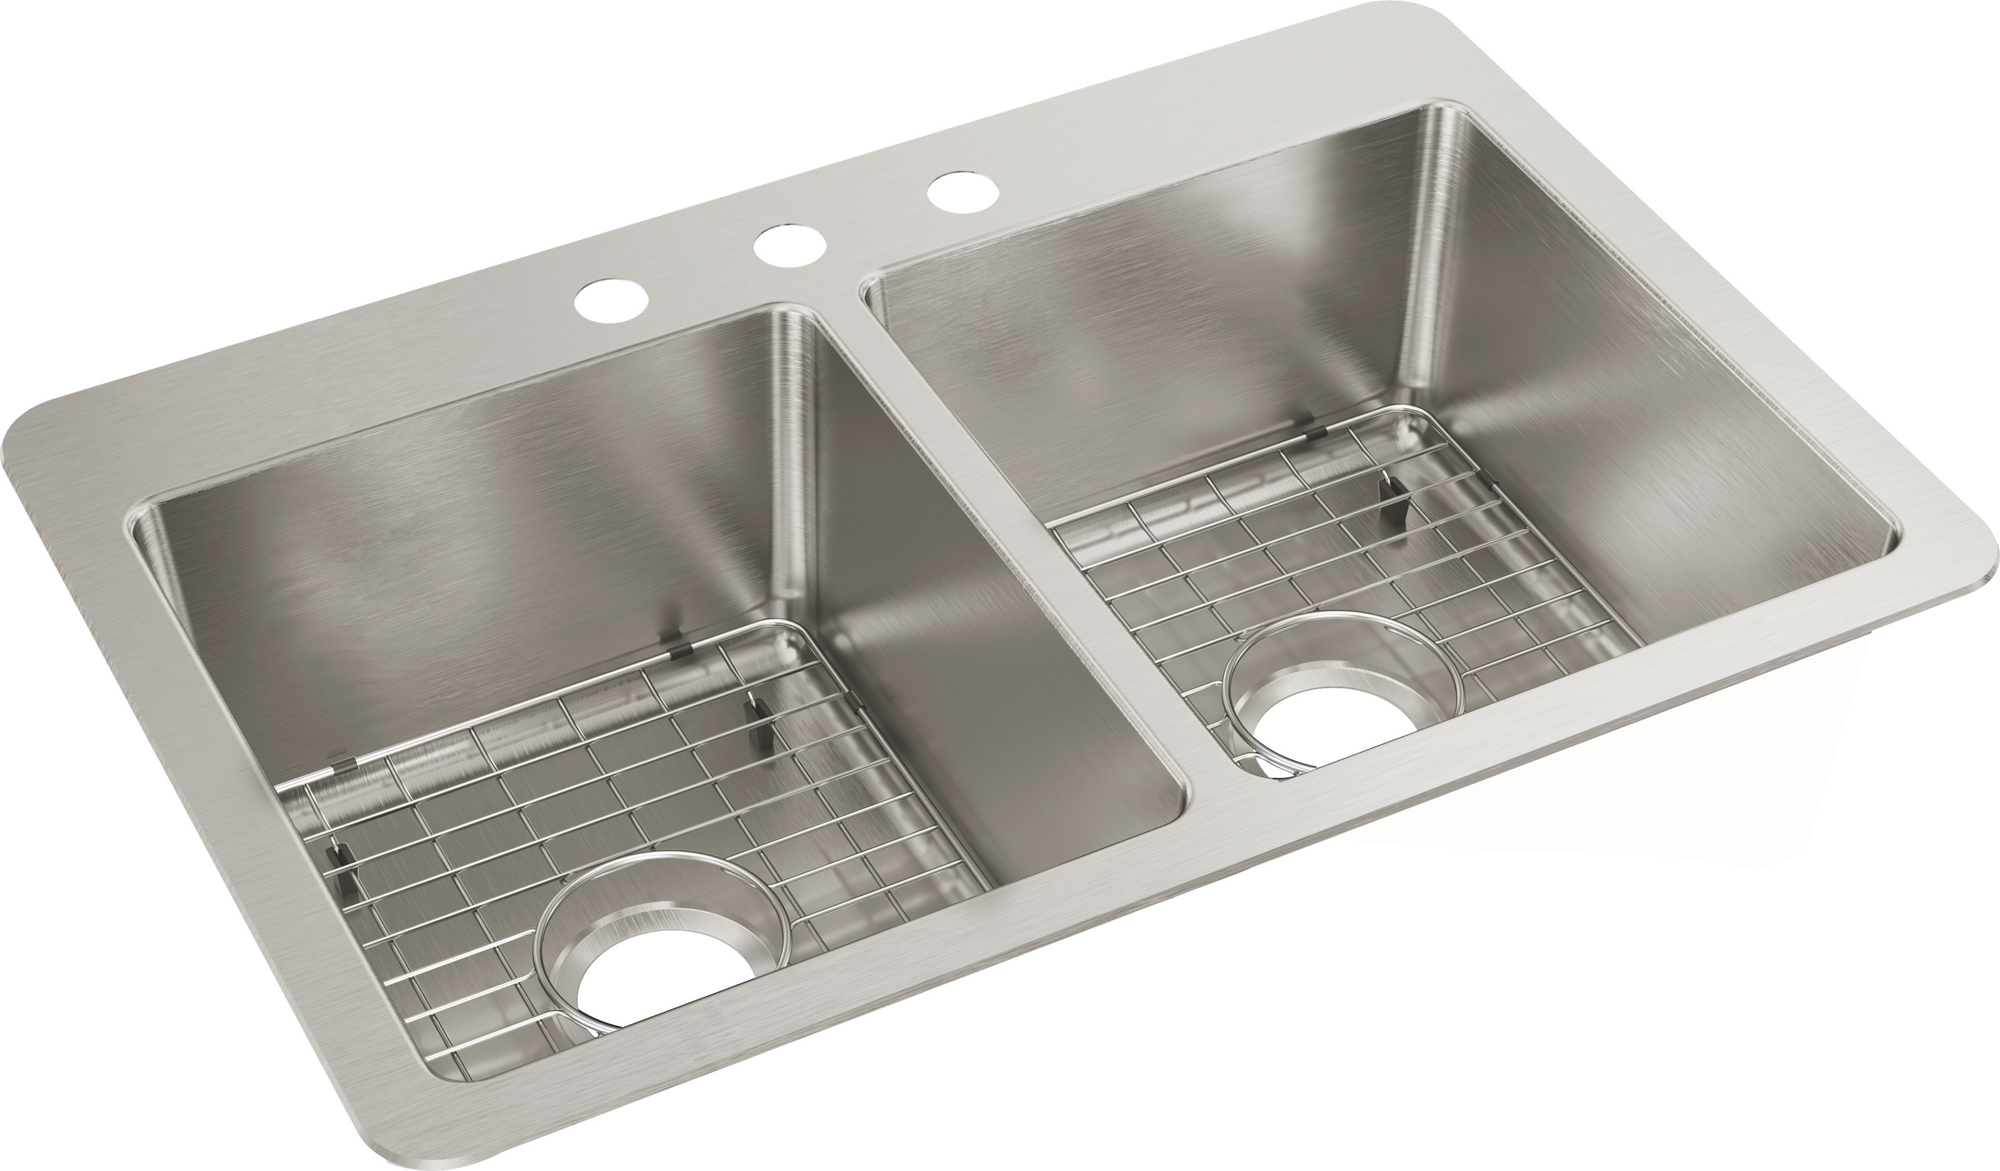 Elkay Avenue Stainless Steel 33 X 22 X 9 Double Bowl Dual Mount Sink